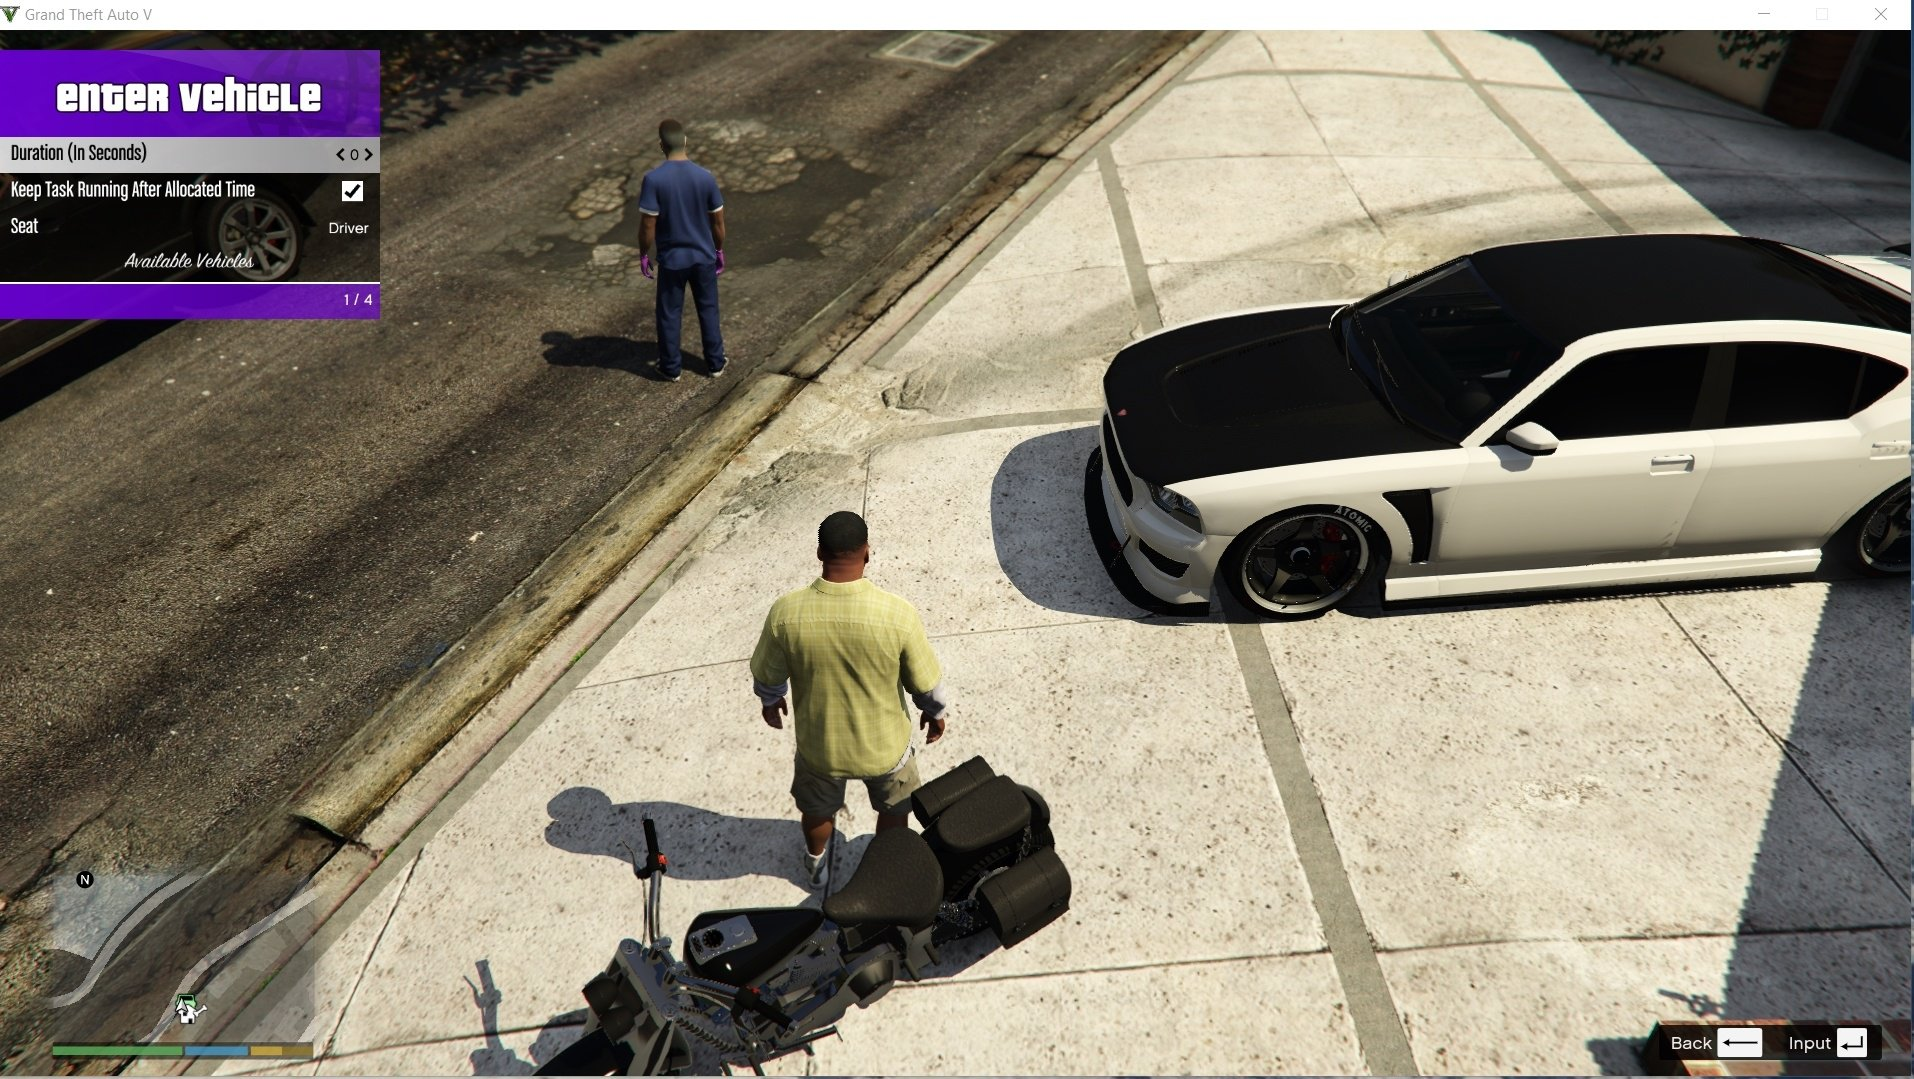 Grand theft auto 4 game mods that  naked pic